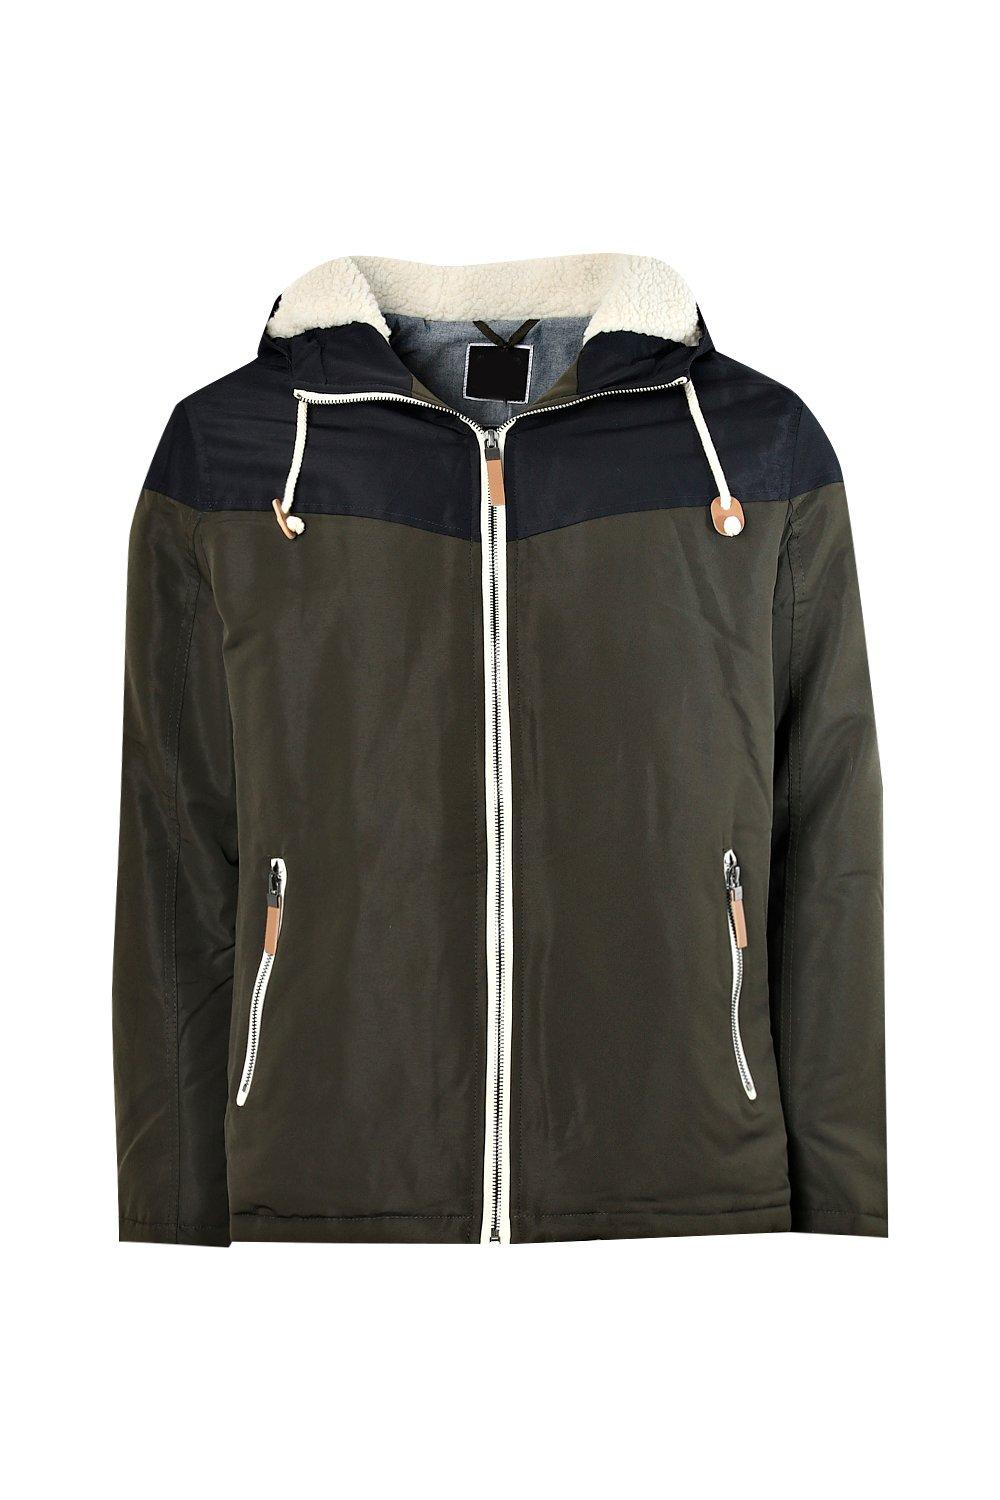 boohooMAN khaki Colour Block Hooded Zip Through Jacket